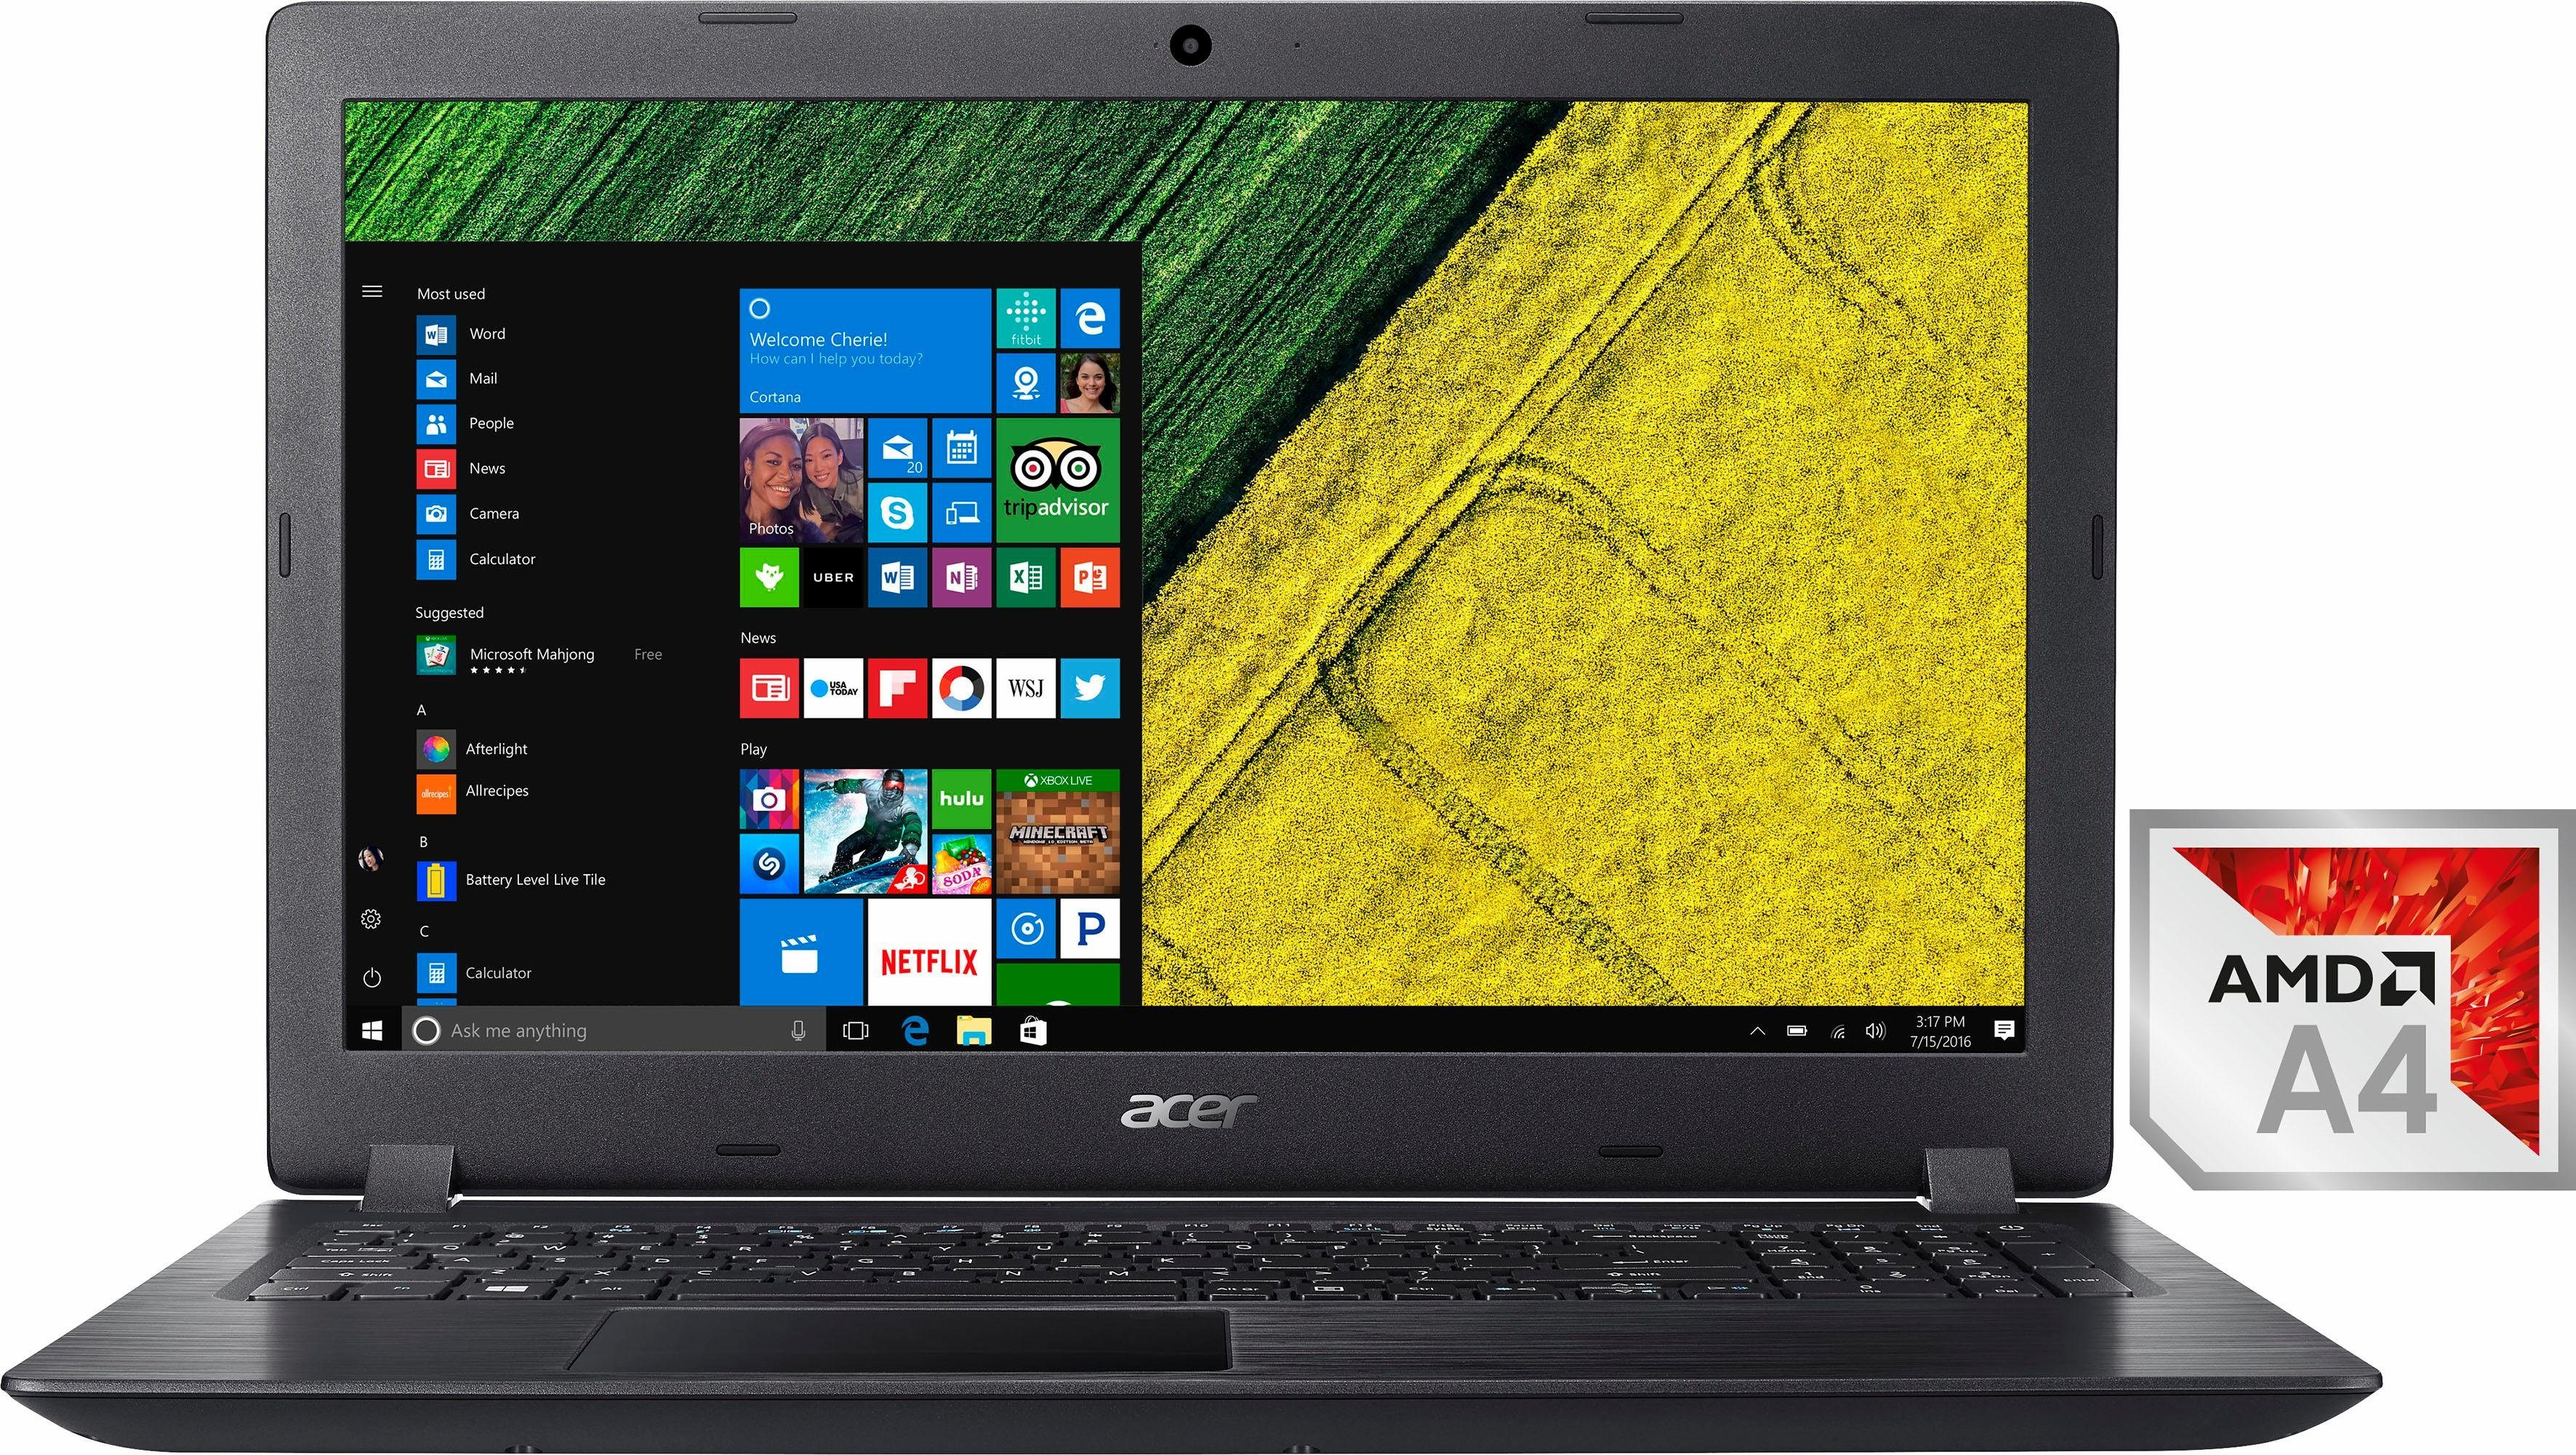 Acer Aspire 3 Netbook (39,6 cm/15,6 Zoll, AMD, R3, 500 GB HDD, Multi-Gesture Touchpad (Microsoft Precision Touchpad Certification)